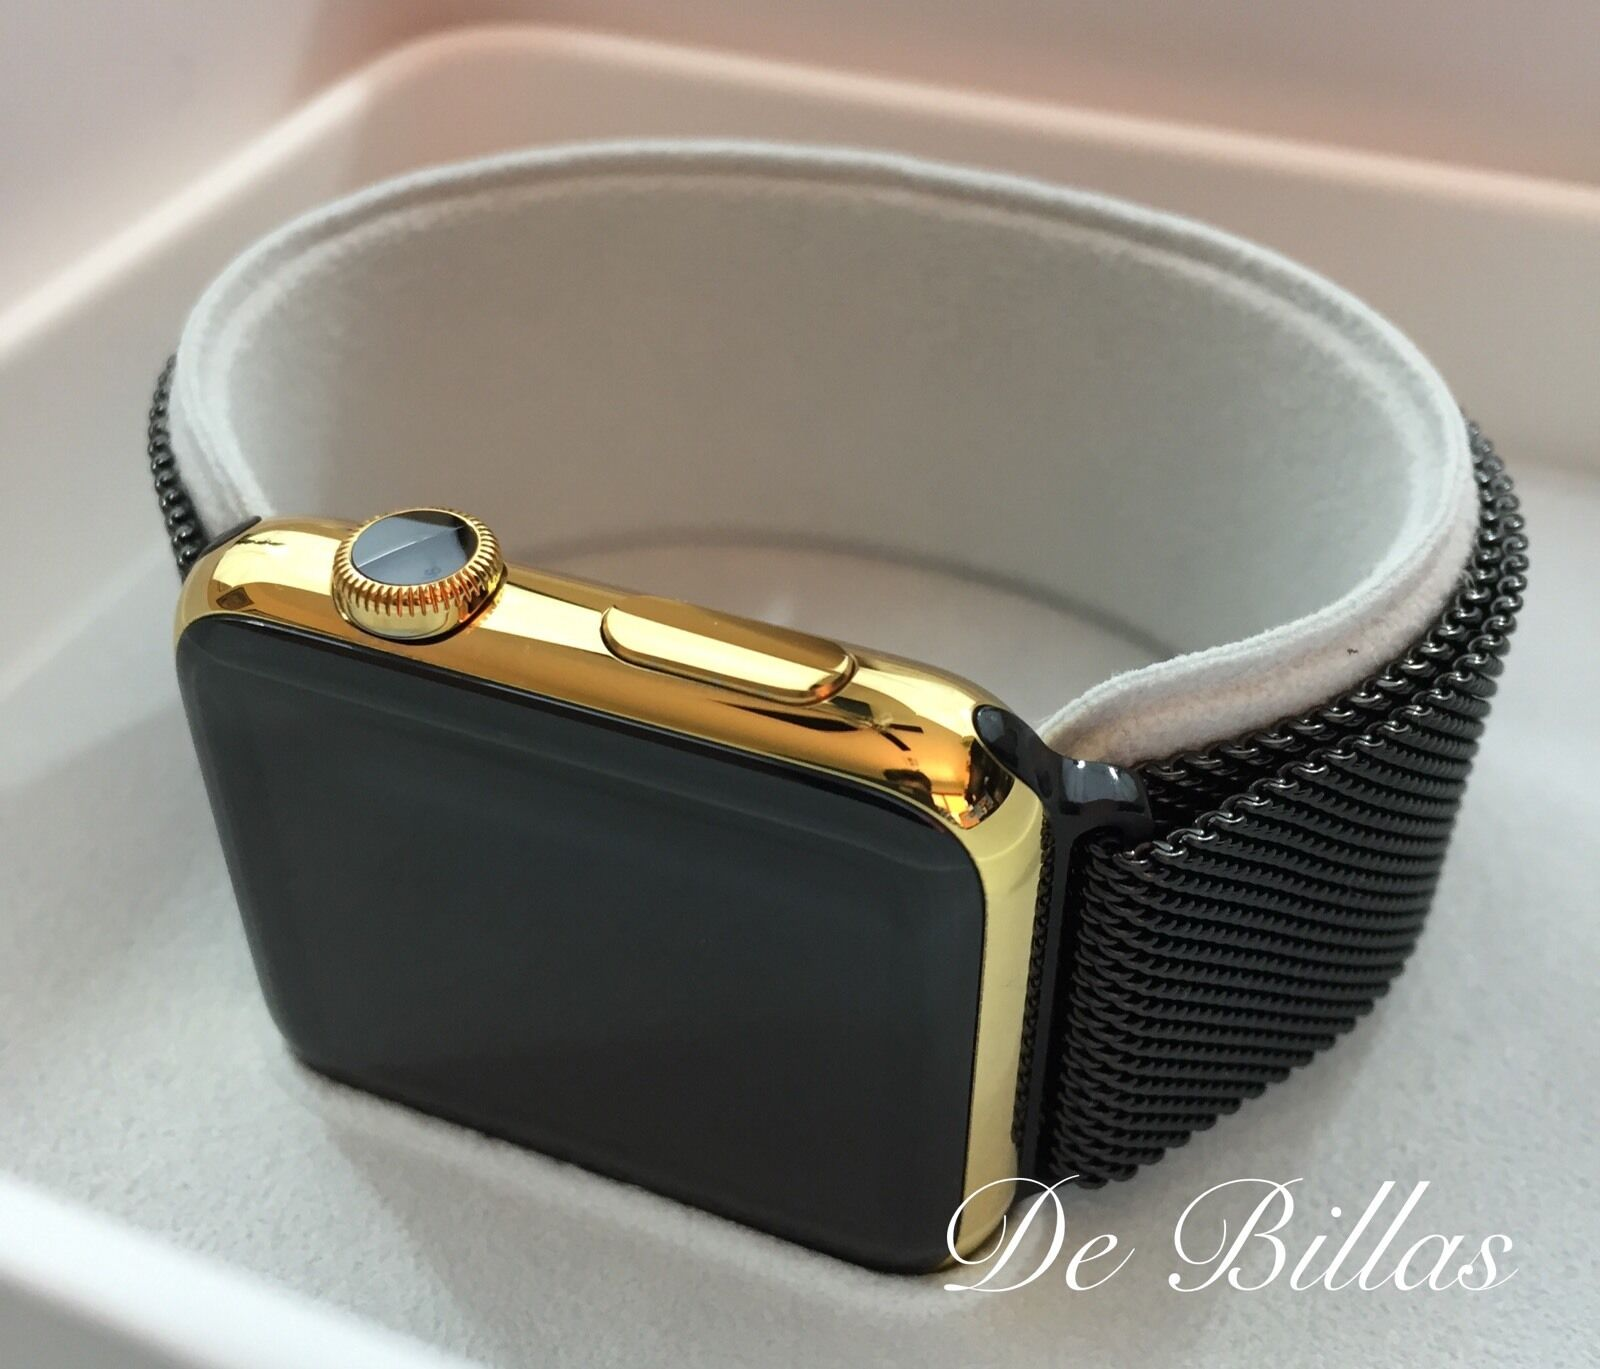 24k Gold Plated 42mm Apple Watch Series 2 With Black Milanese Loop Band Custom For Sale Online